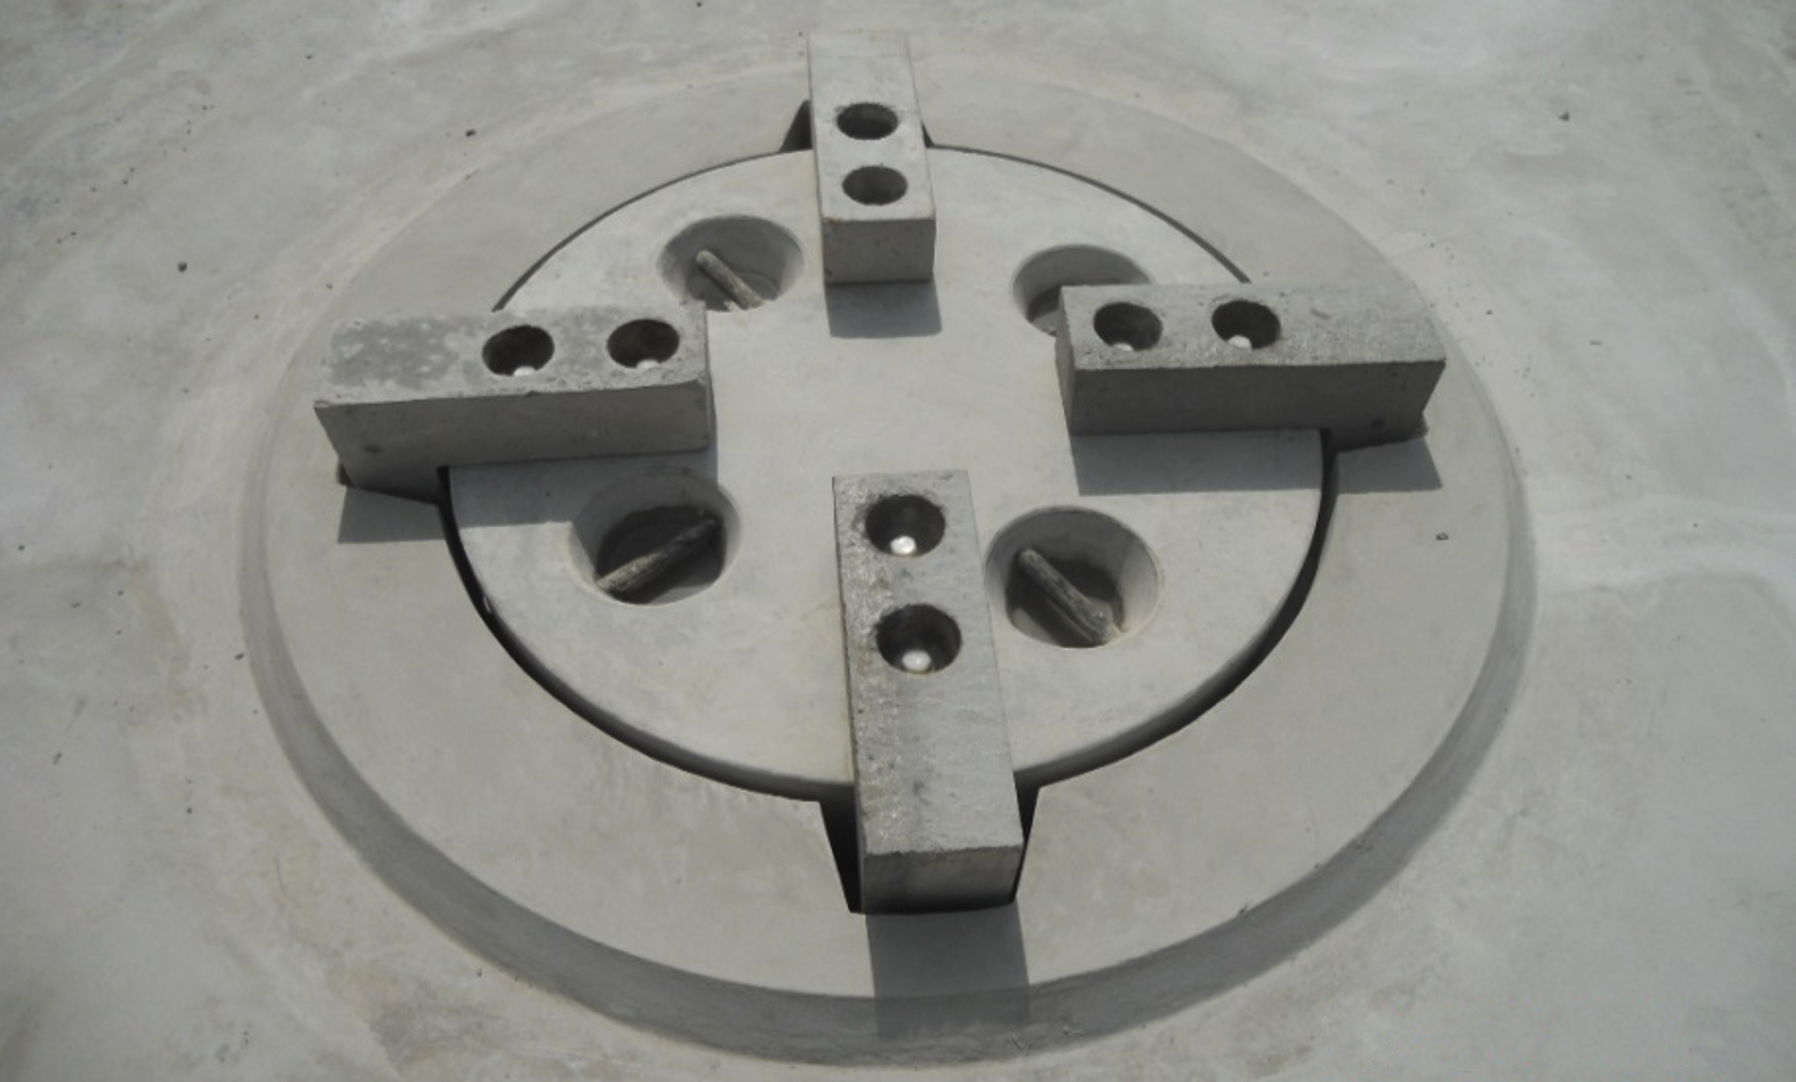 Inside accessible by corrosion-free manhole